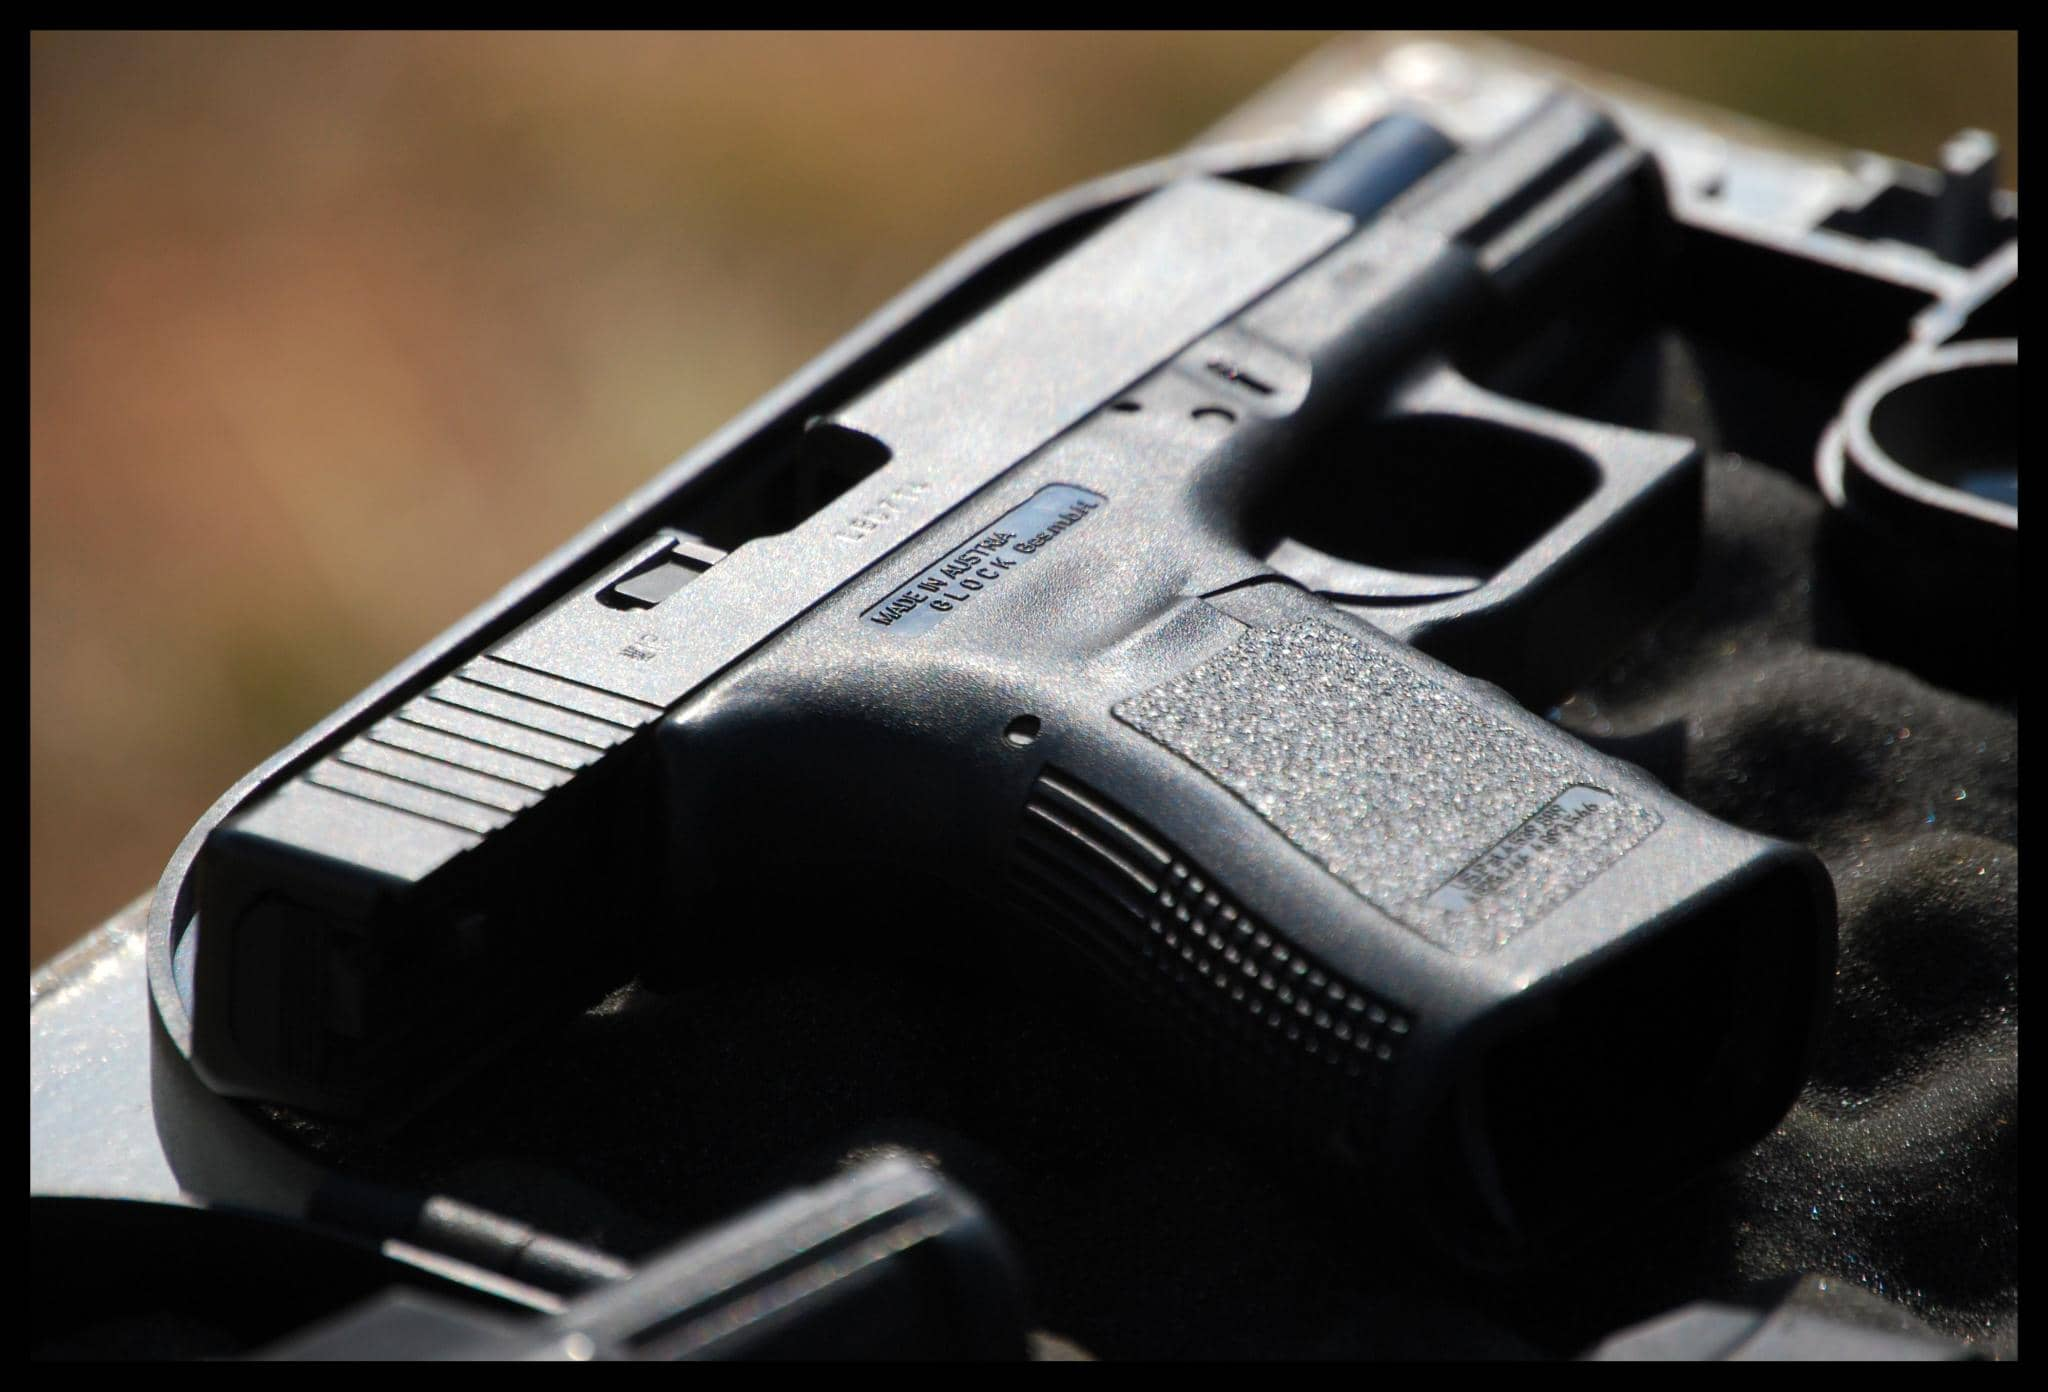 Cape Town, Athlone: Two killed, three critical in shootout